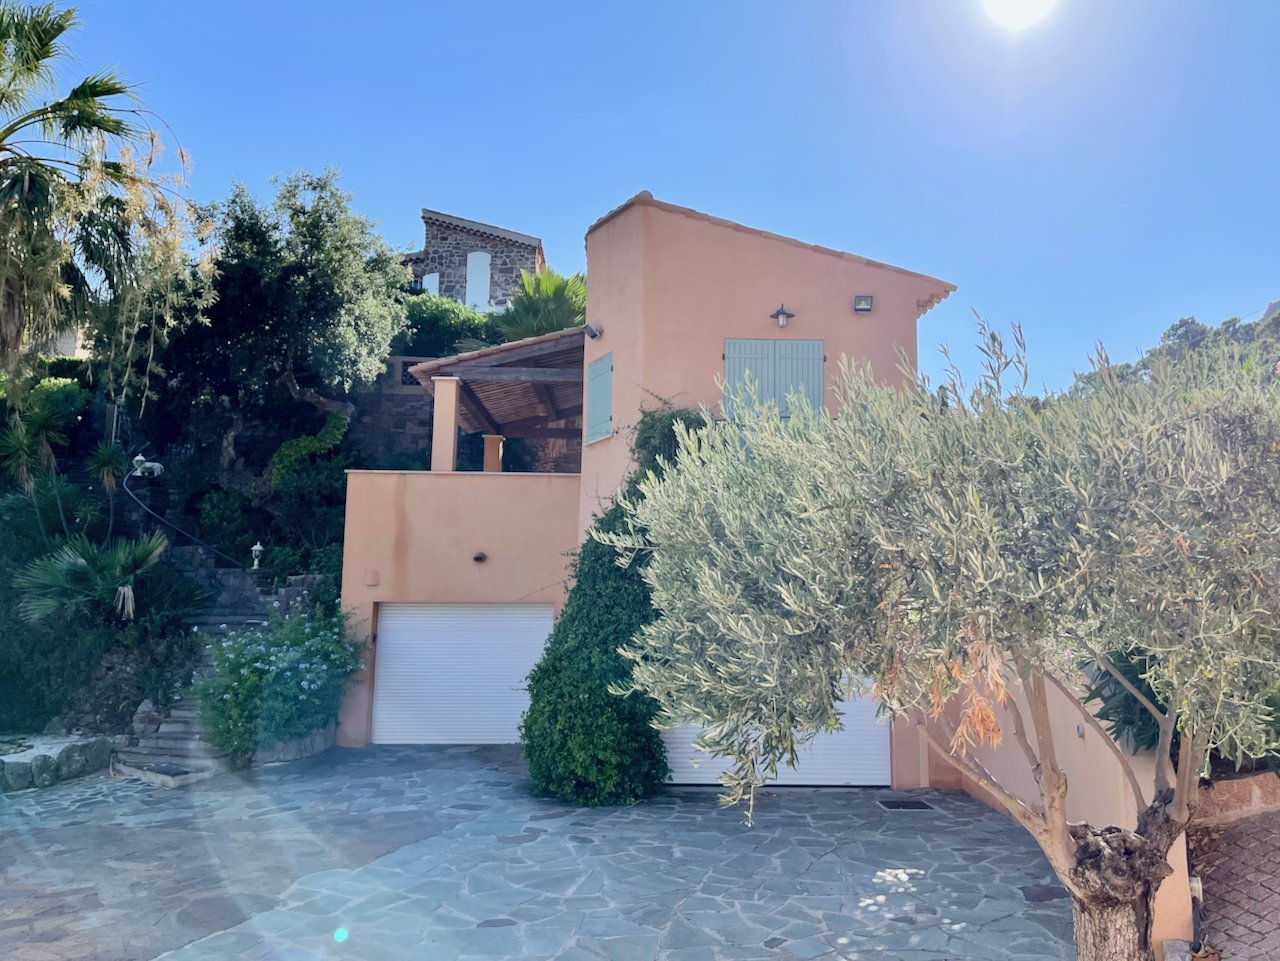 Saint Raphael, Antheor - Spacious villa with separate guest house on the Mediterranean and Esterel mountains